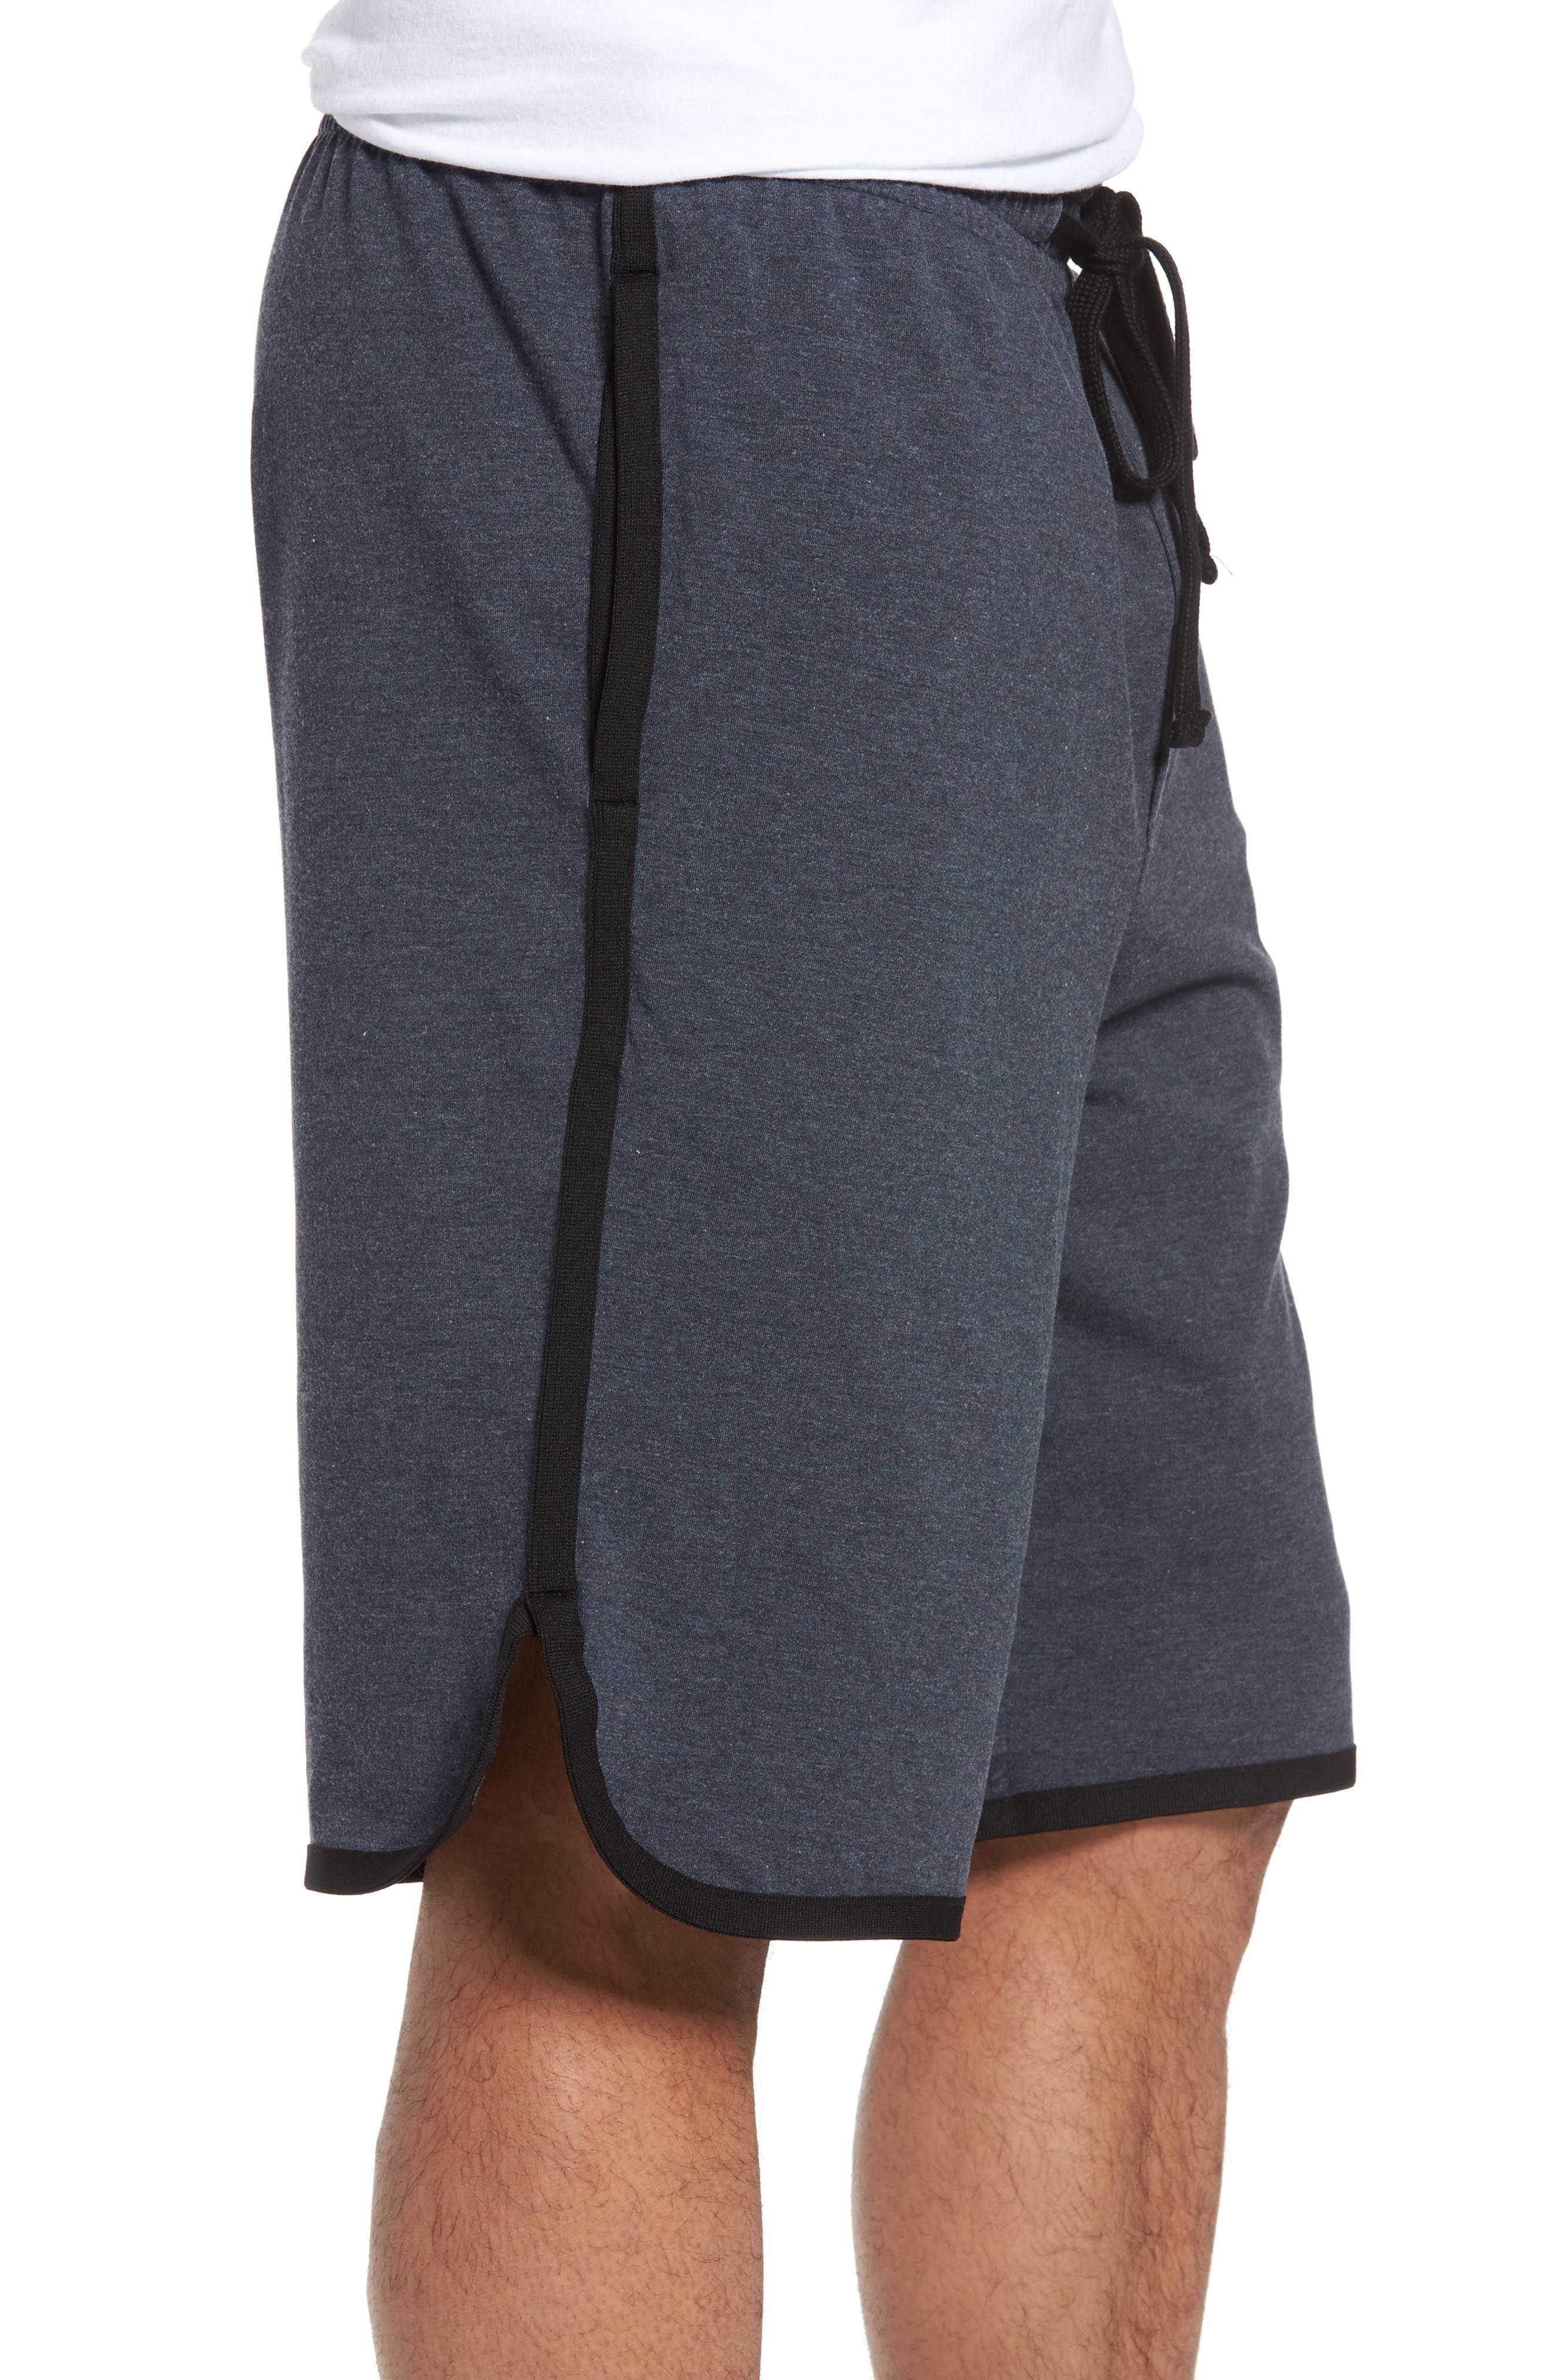 Drawstring Basketball Shorts,                             Alternate thumbnail 3, color,                             Deep